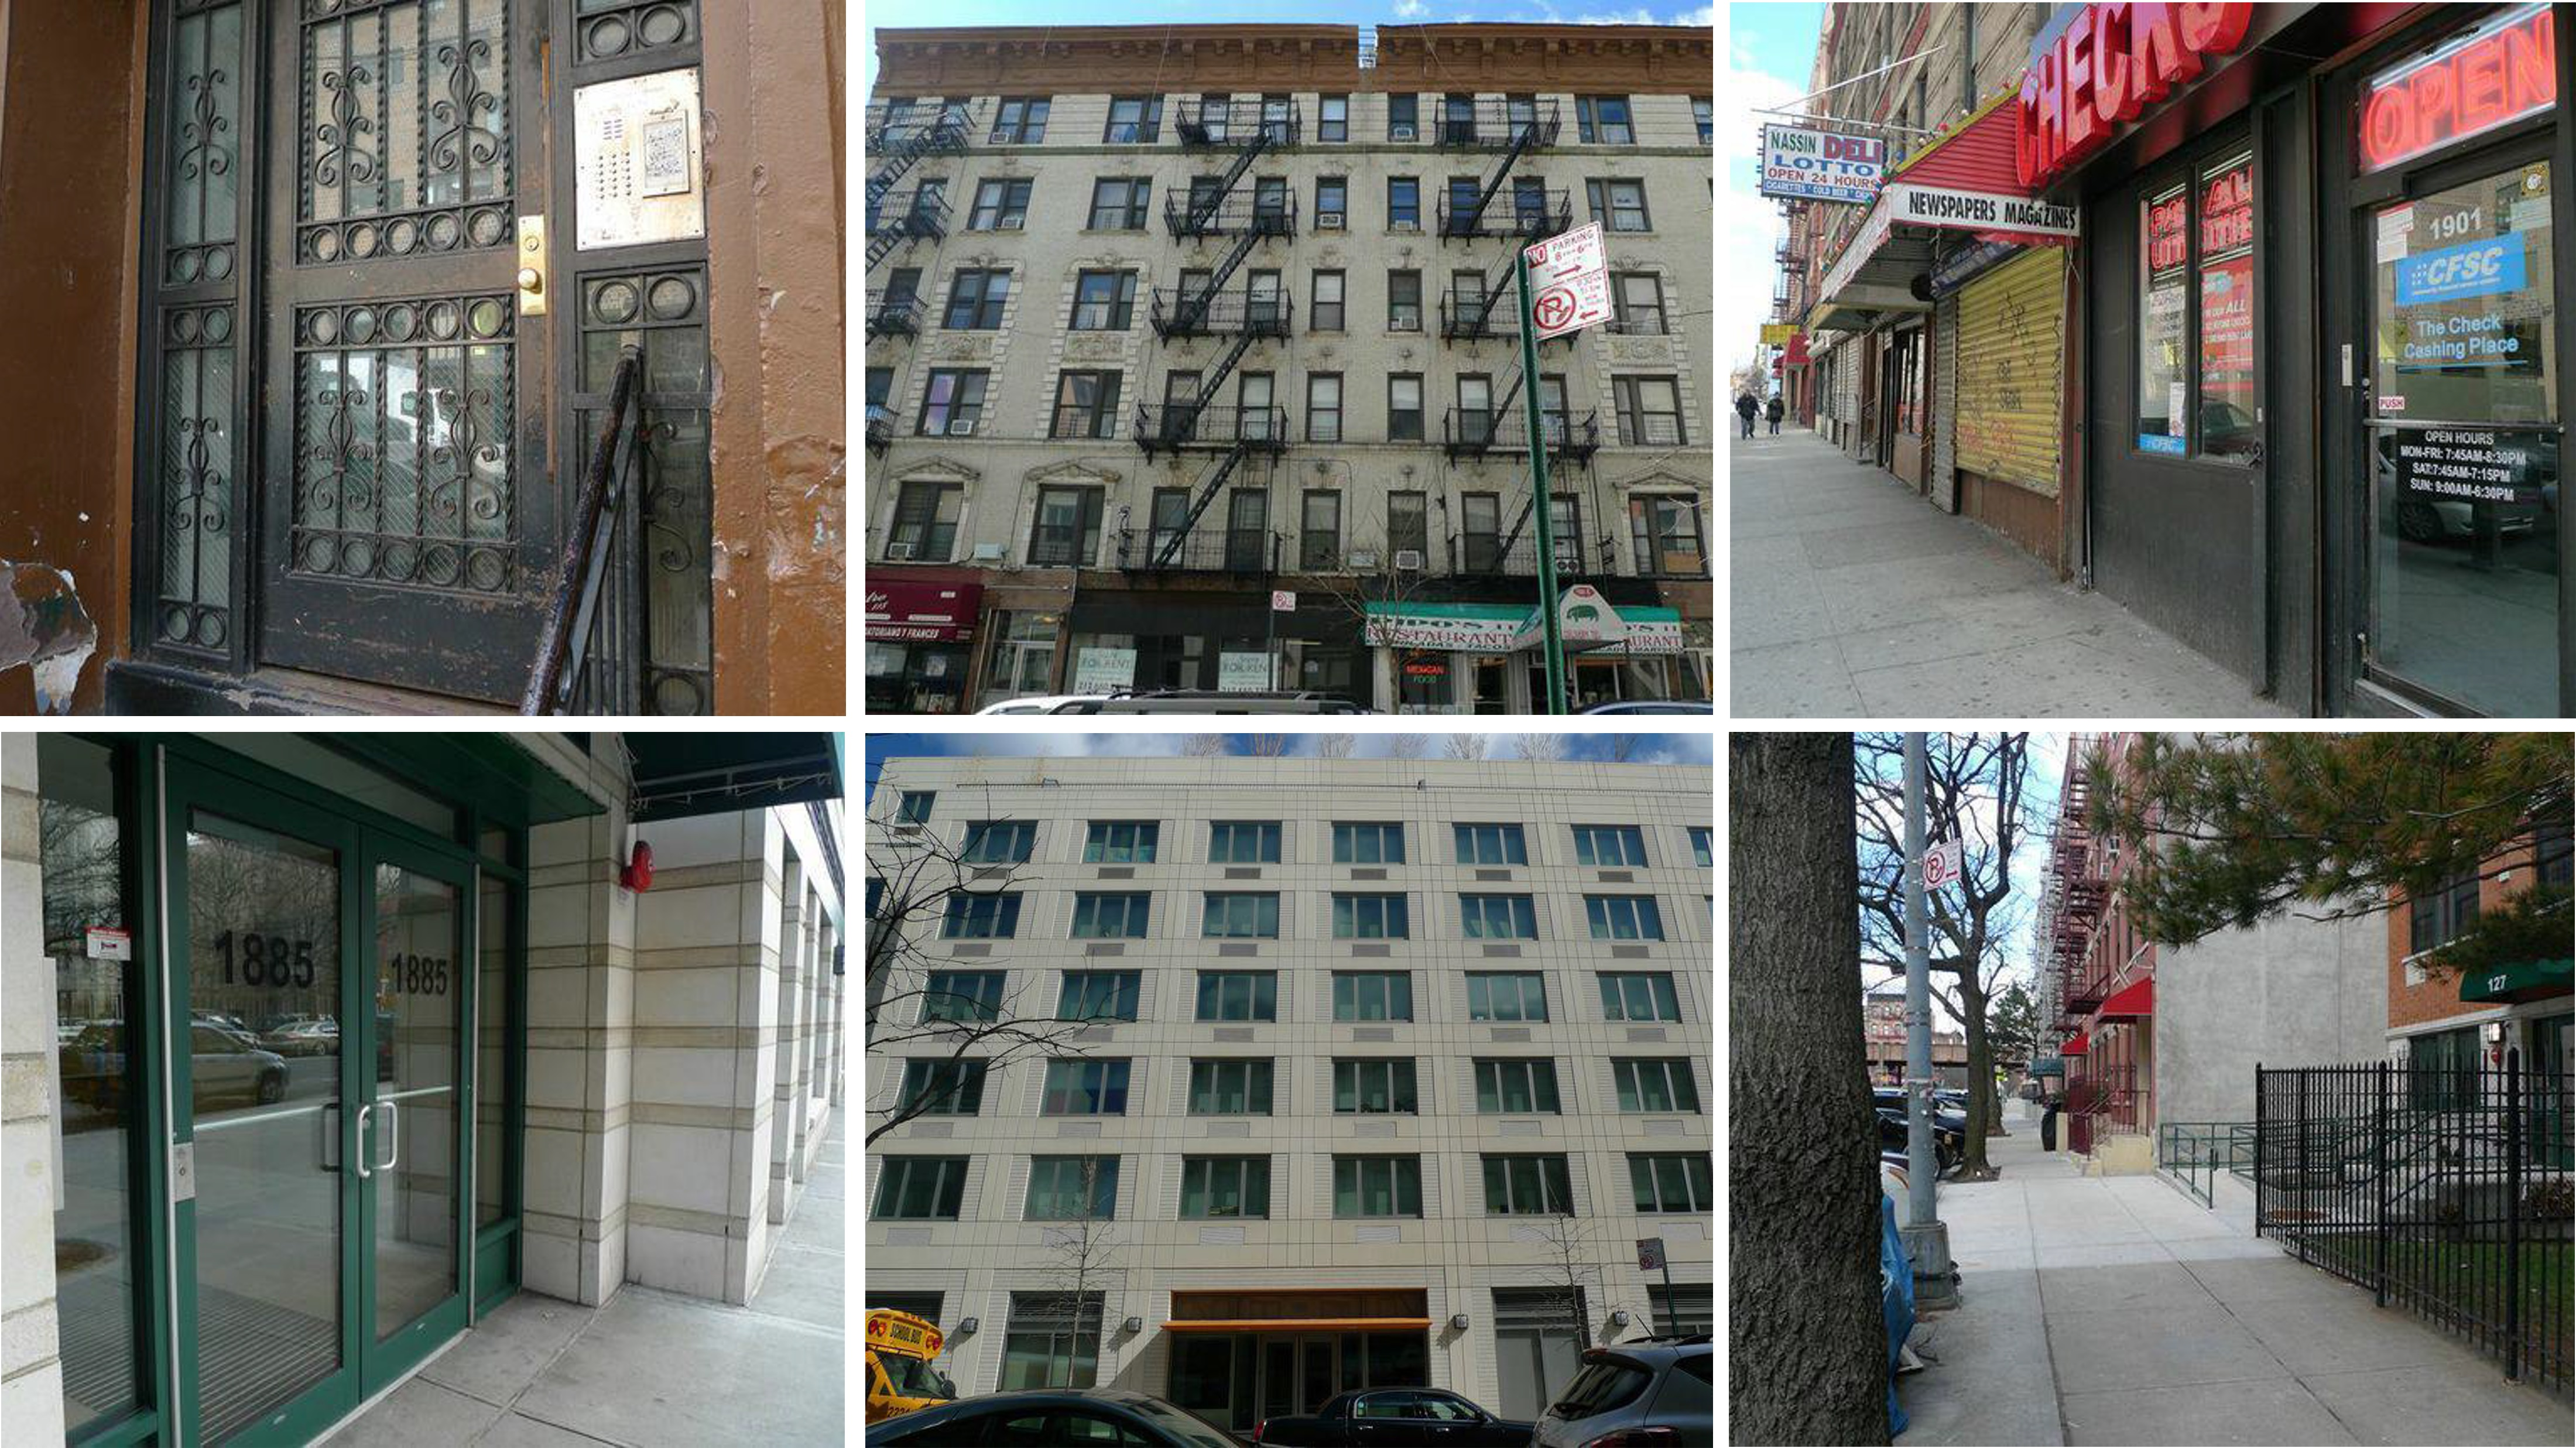 A grid of six different architectural facades in Central Harlem in various states